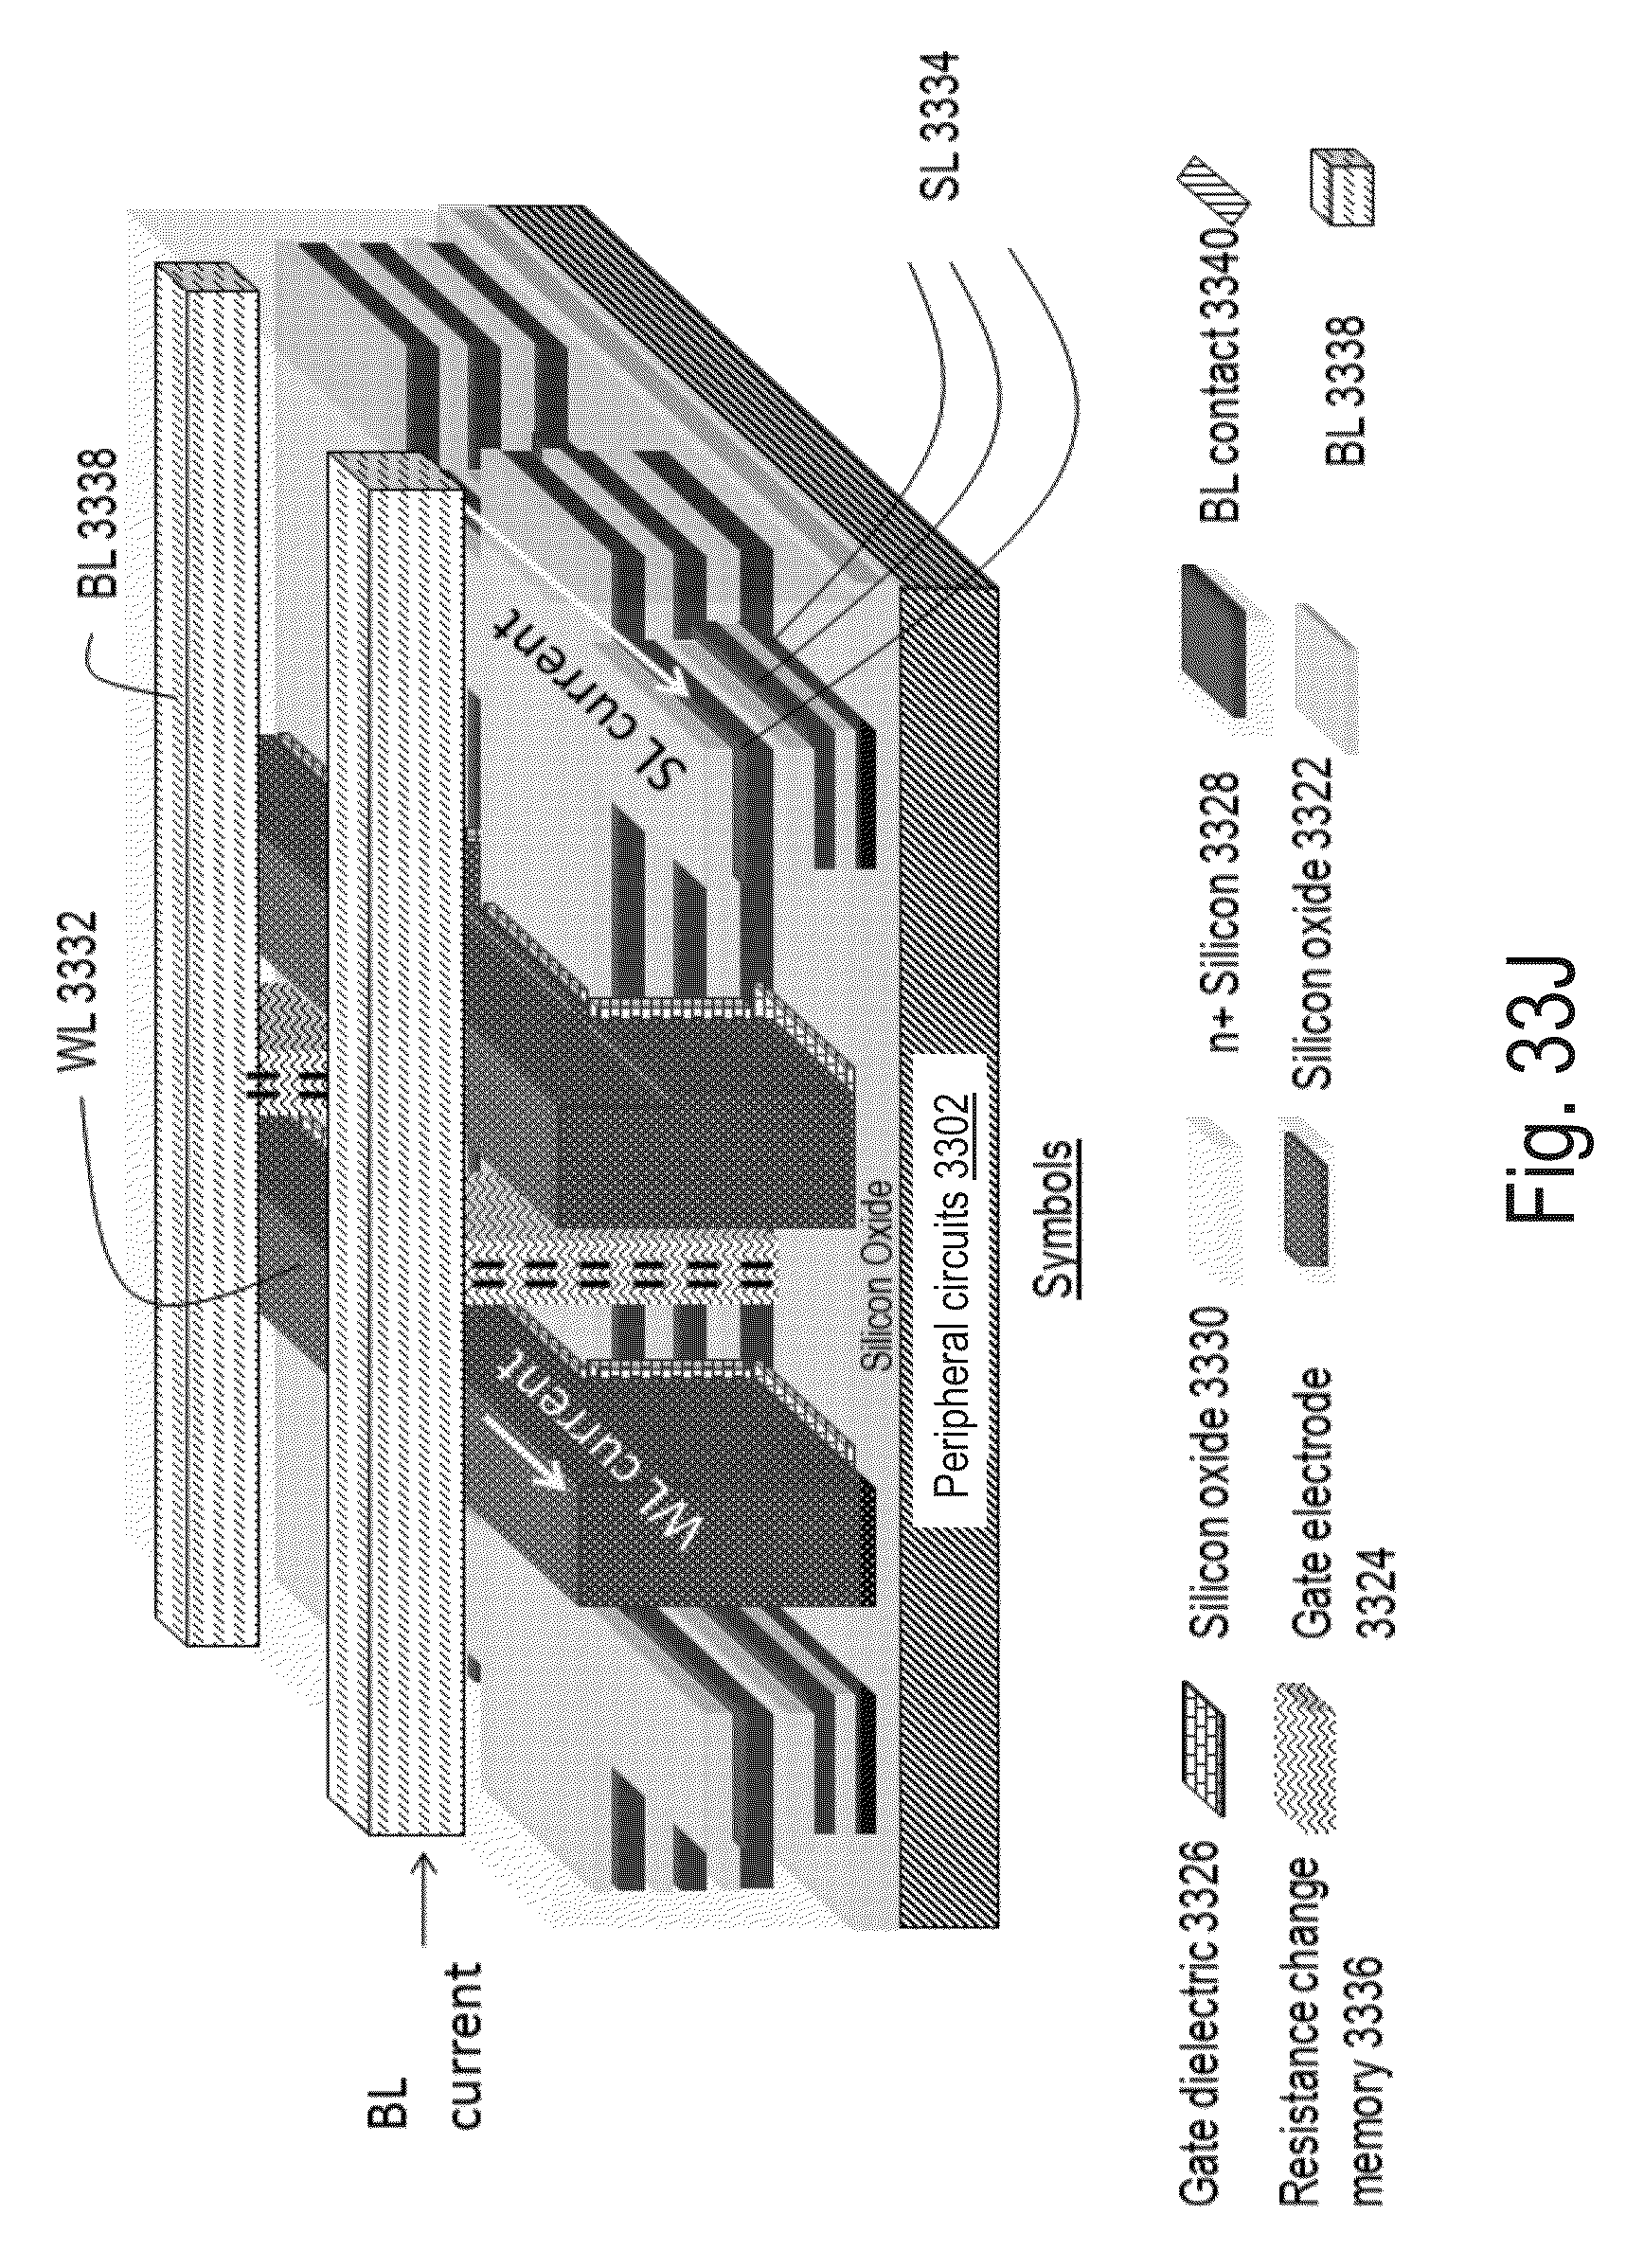 Patent Us 9219005 B2 Op Amp Low Pass Filter Using Tr 6922 Images